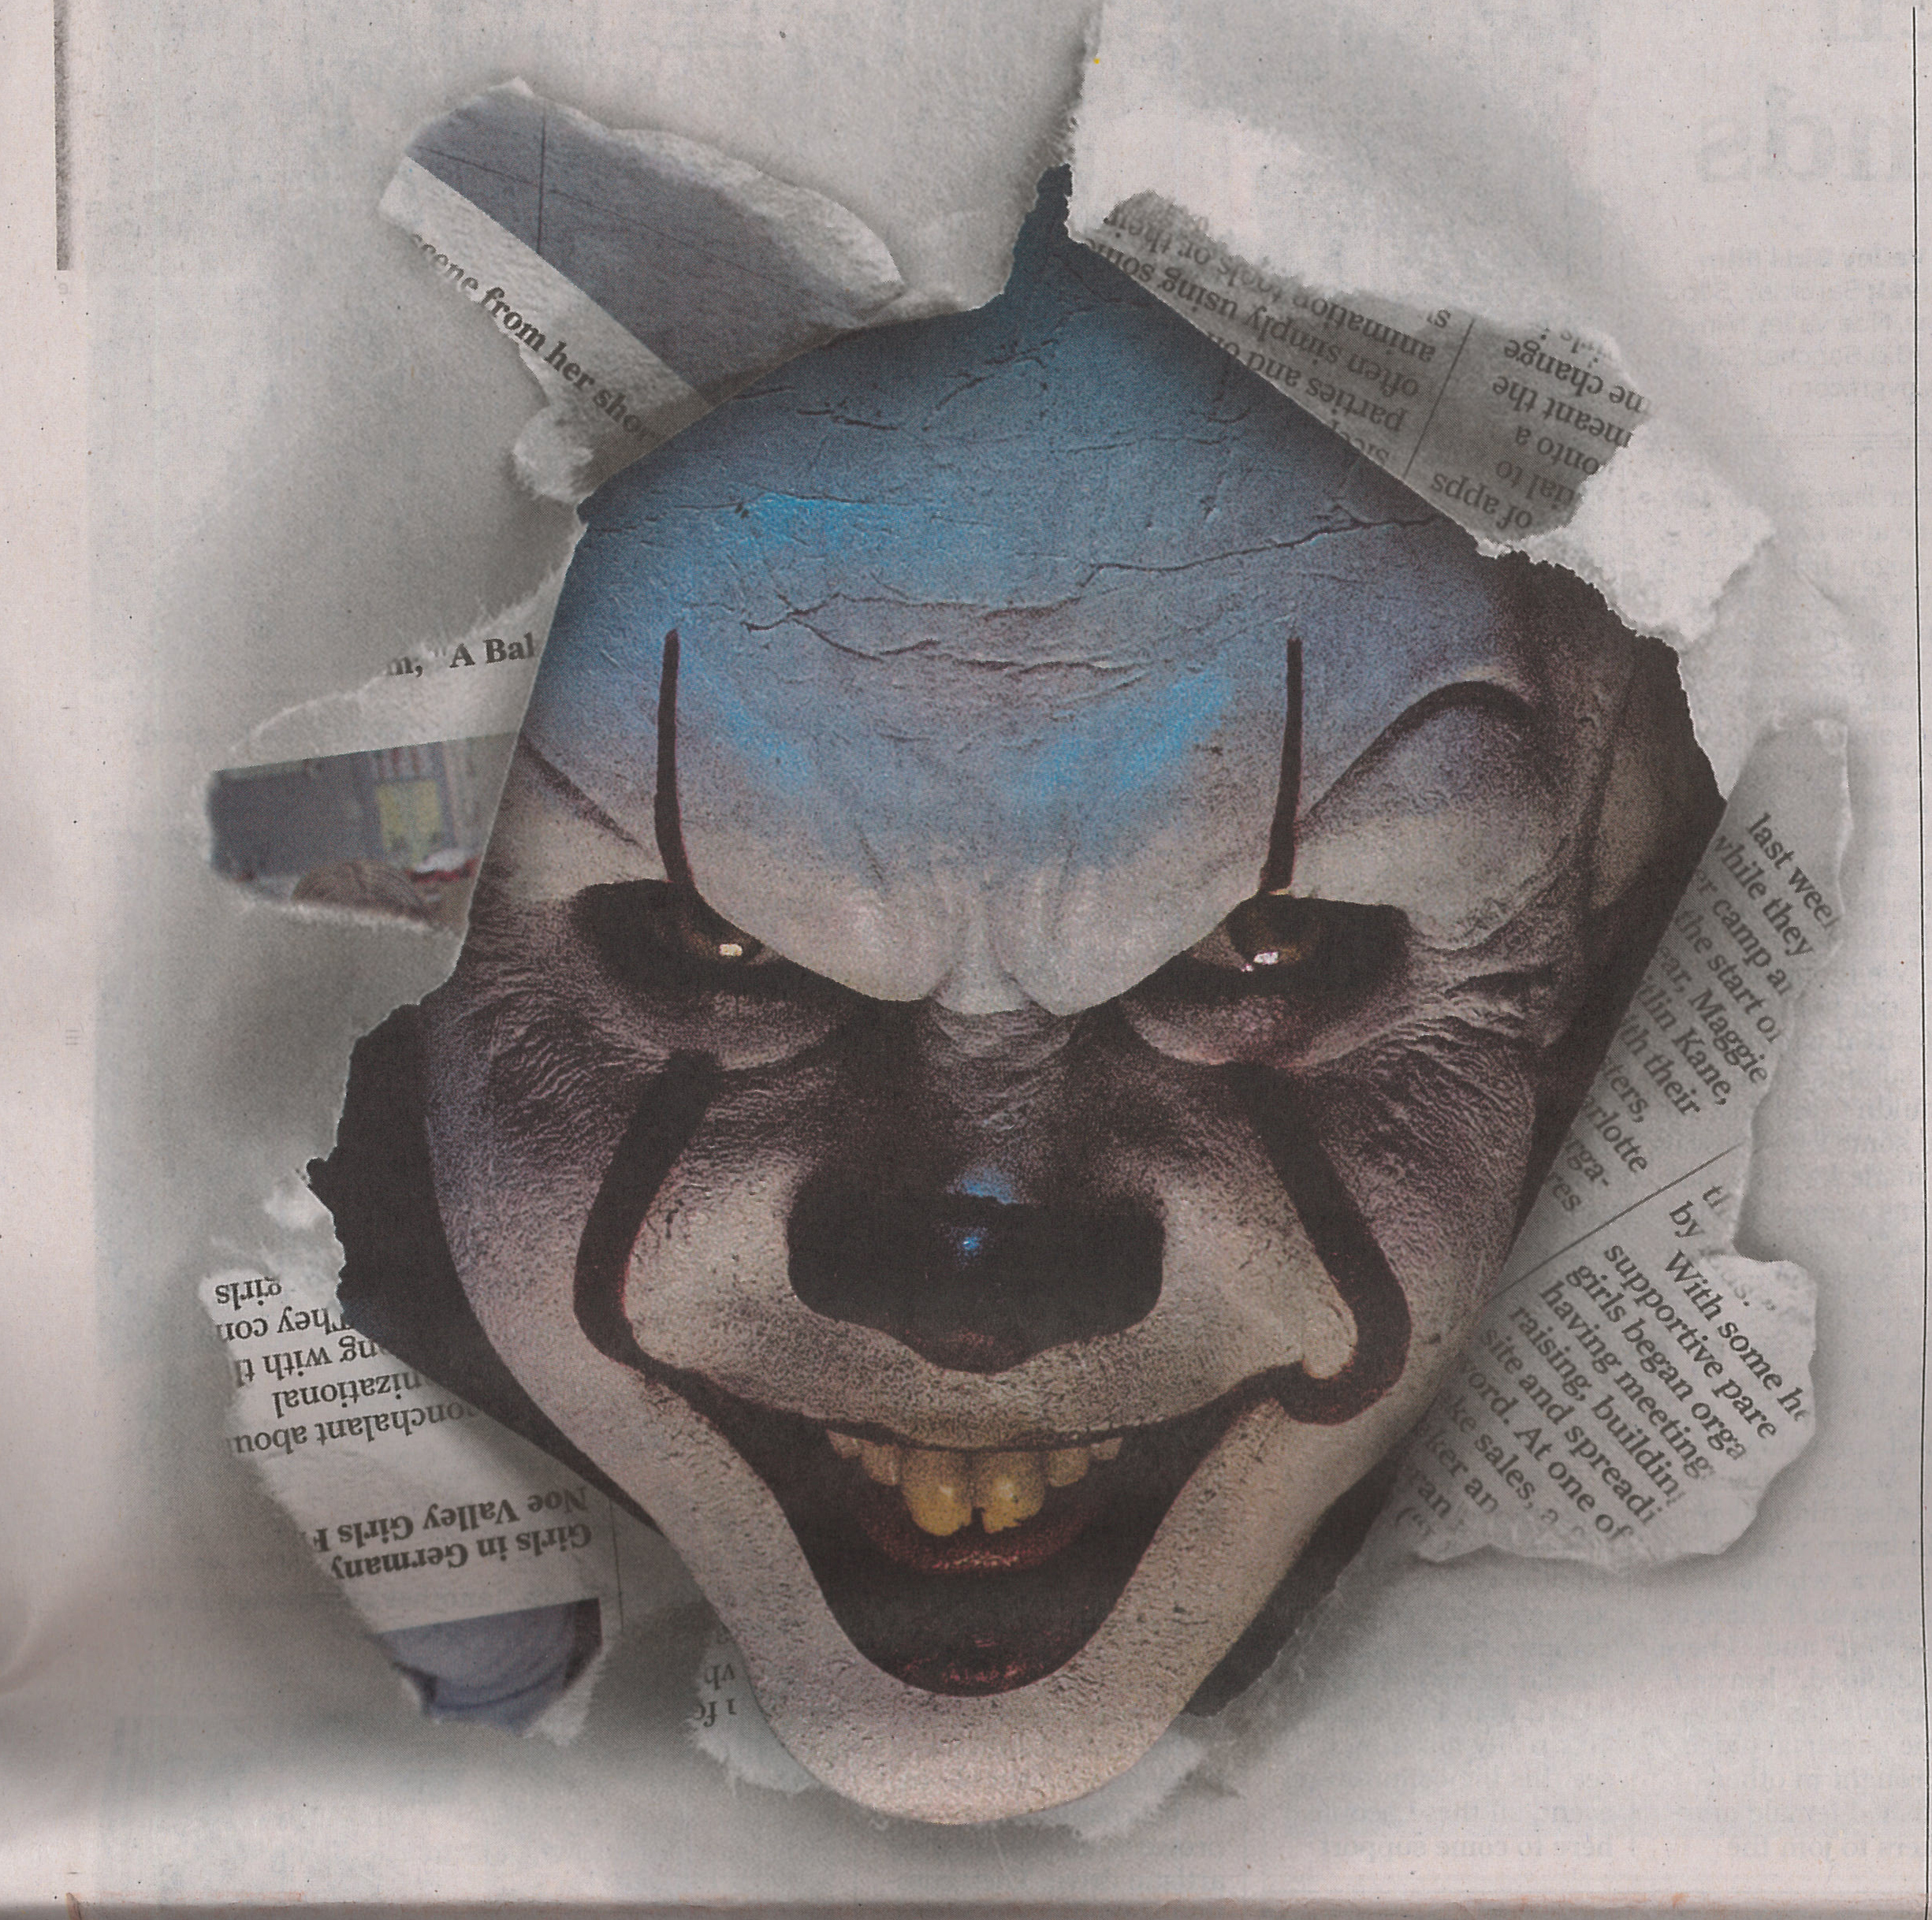 Clown Pennywise from Stephen King's IT